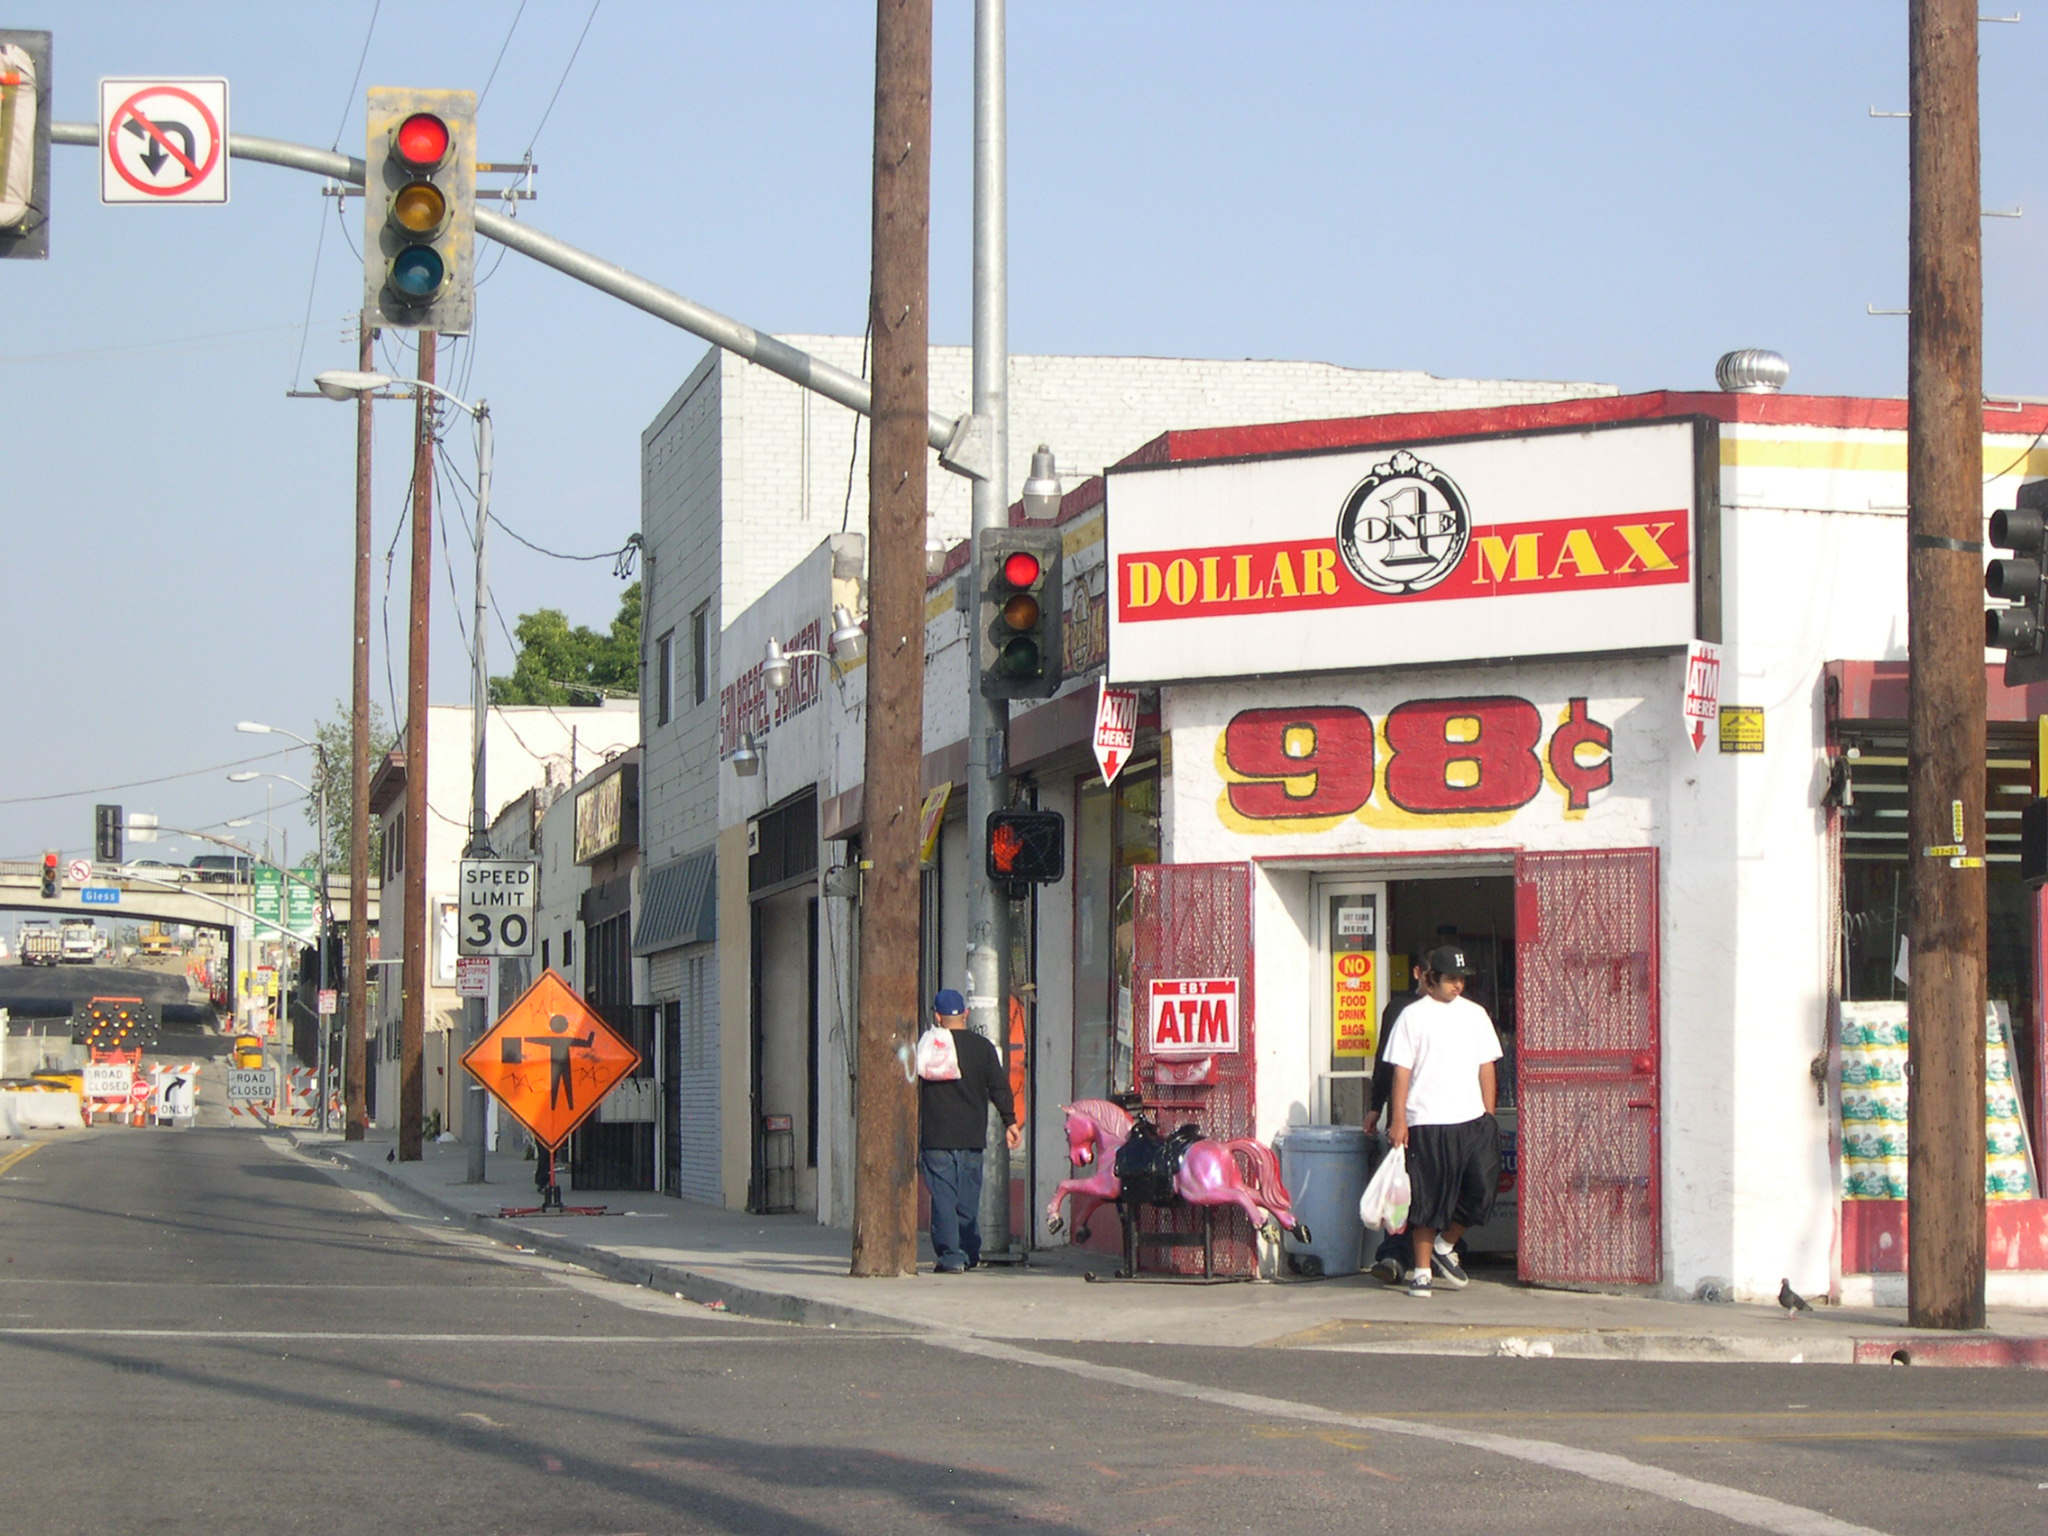 The good old 98 cent store, commerical anchor of the community